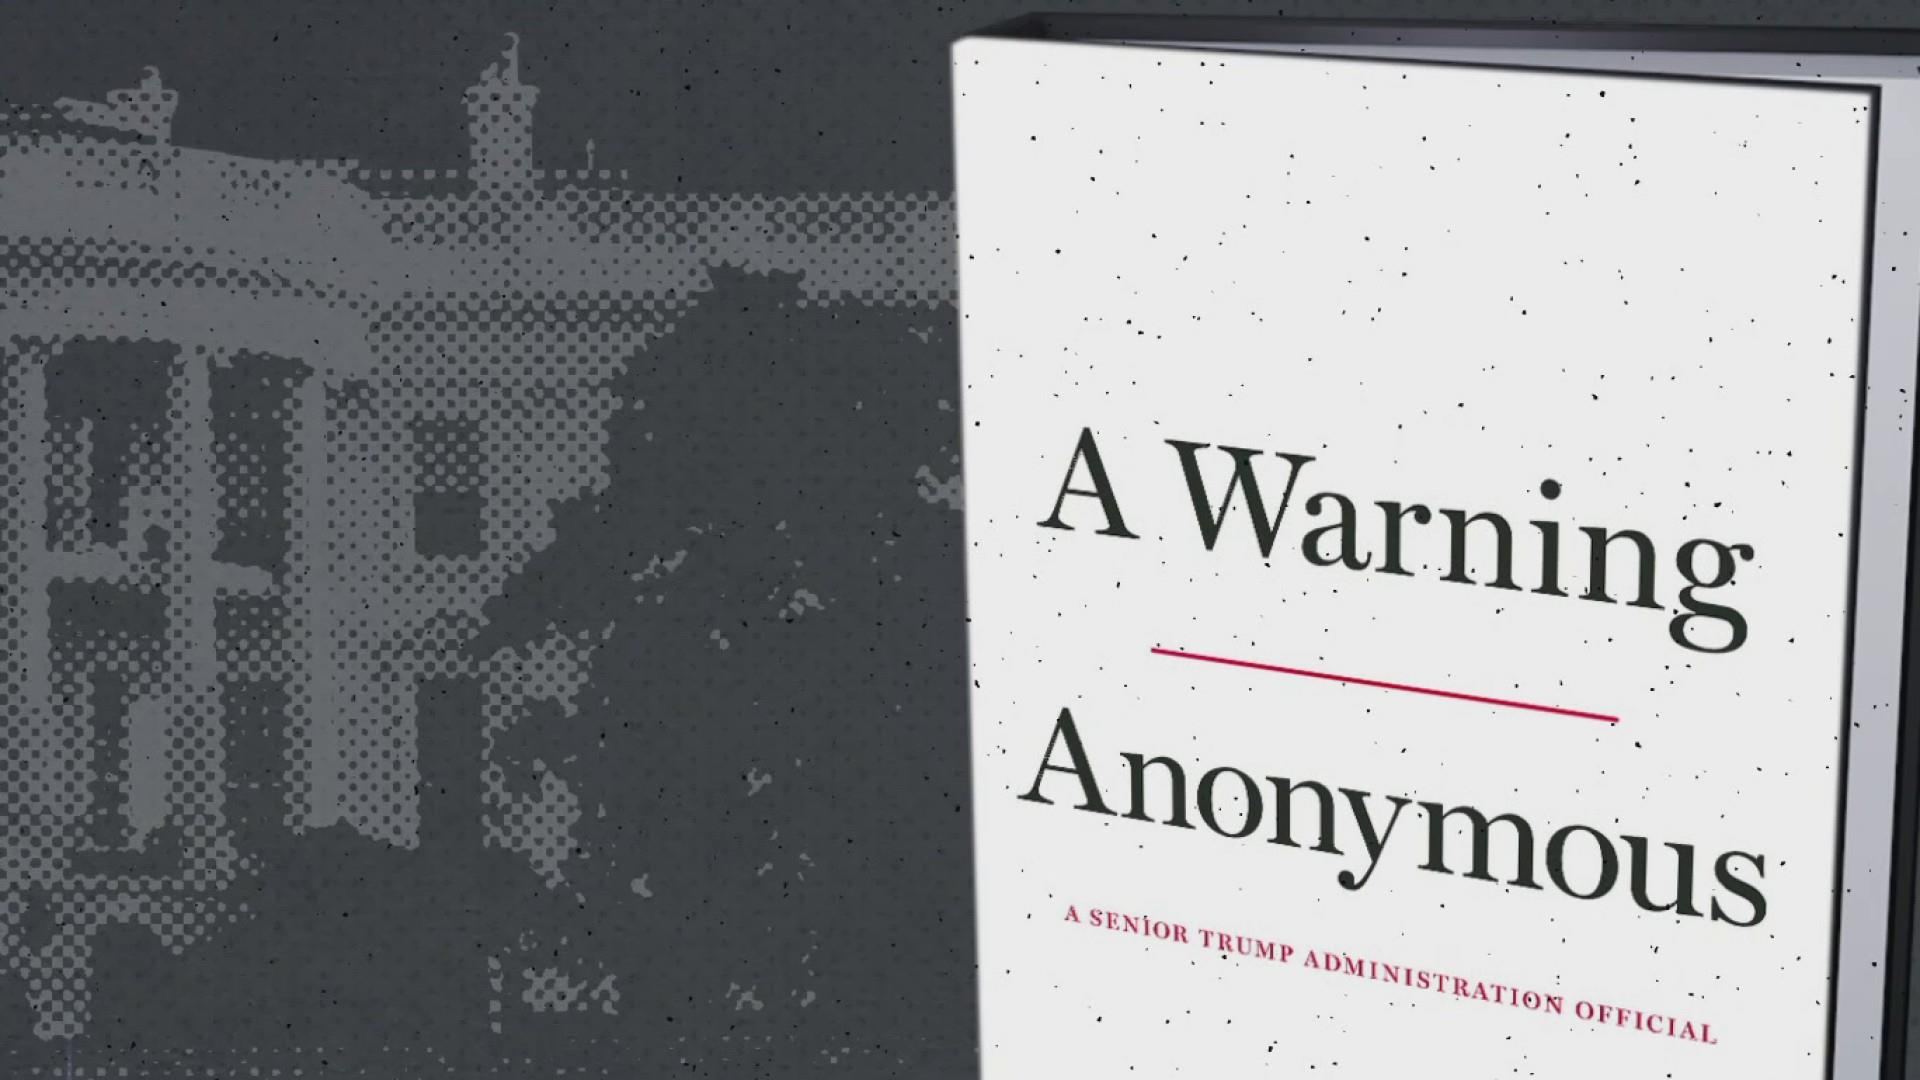 Author of anonymous 'resistance' op-ed has written a book about Trump